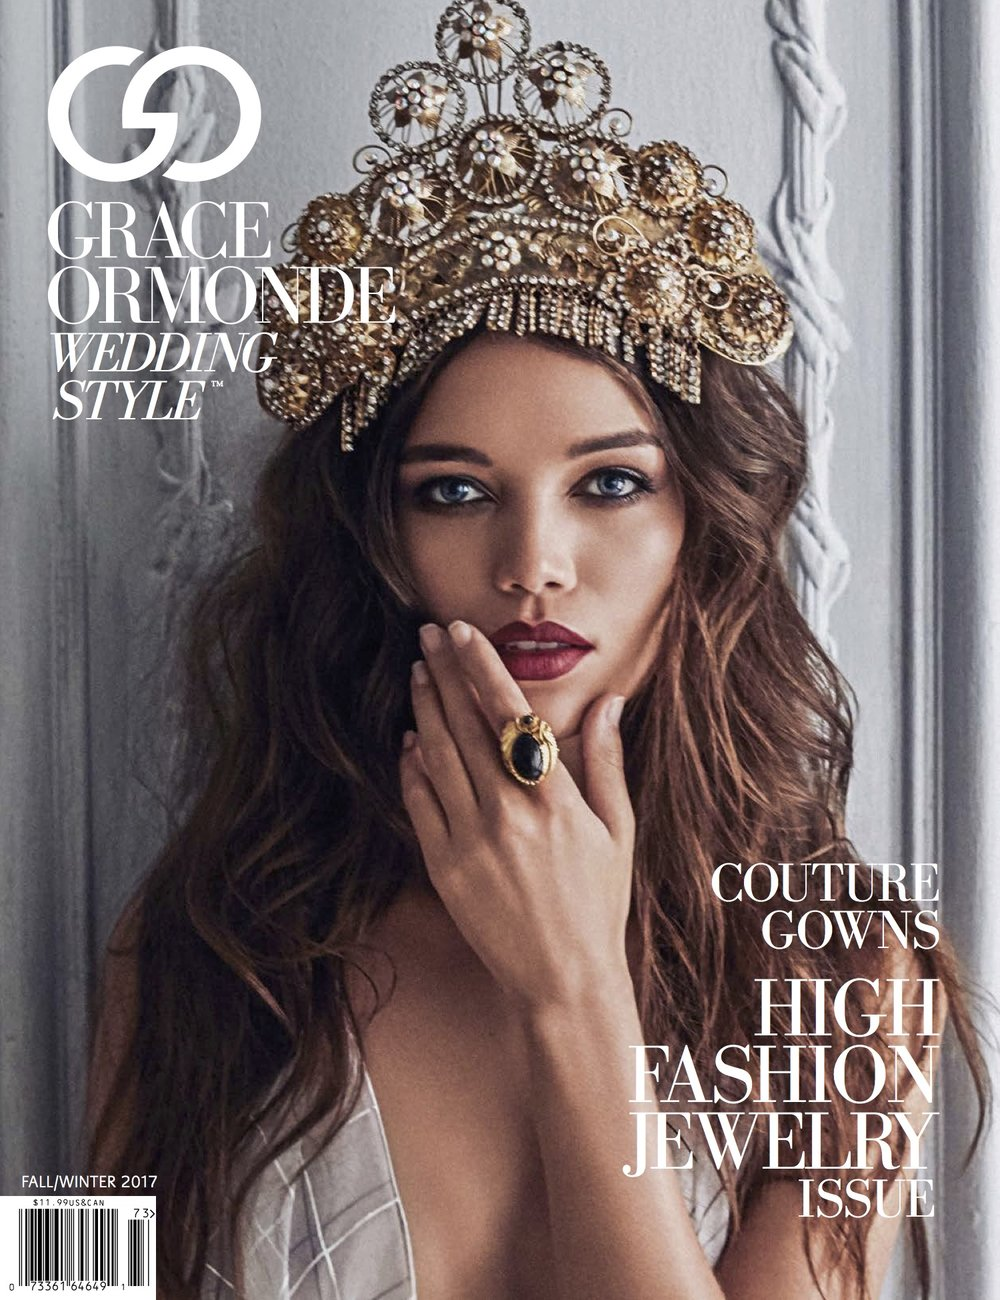 Grace Ormonde Magazine Fall 2017 cover